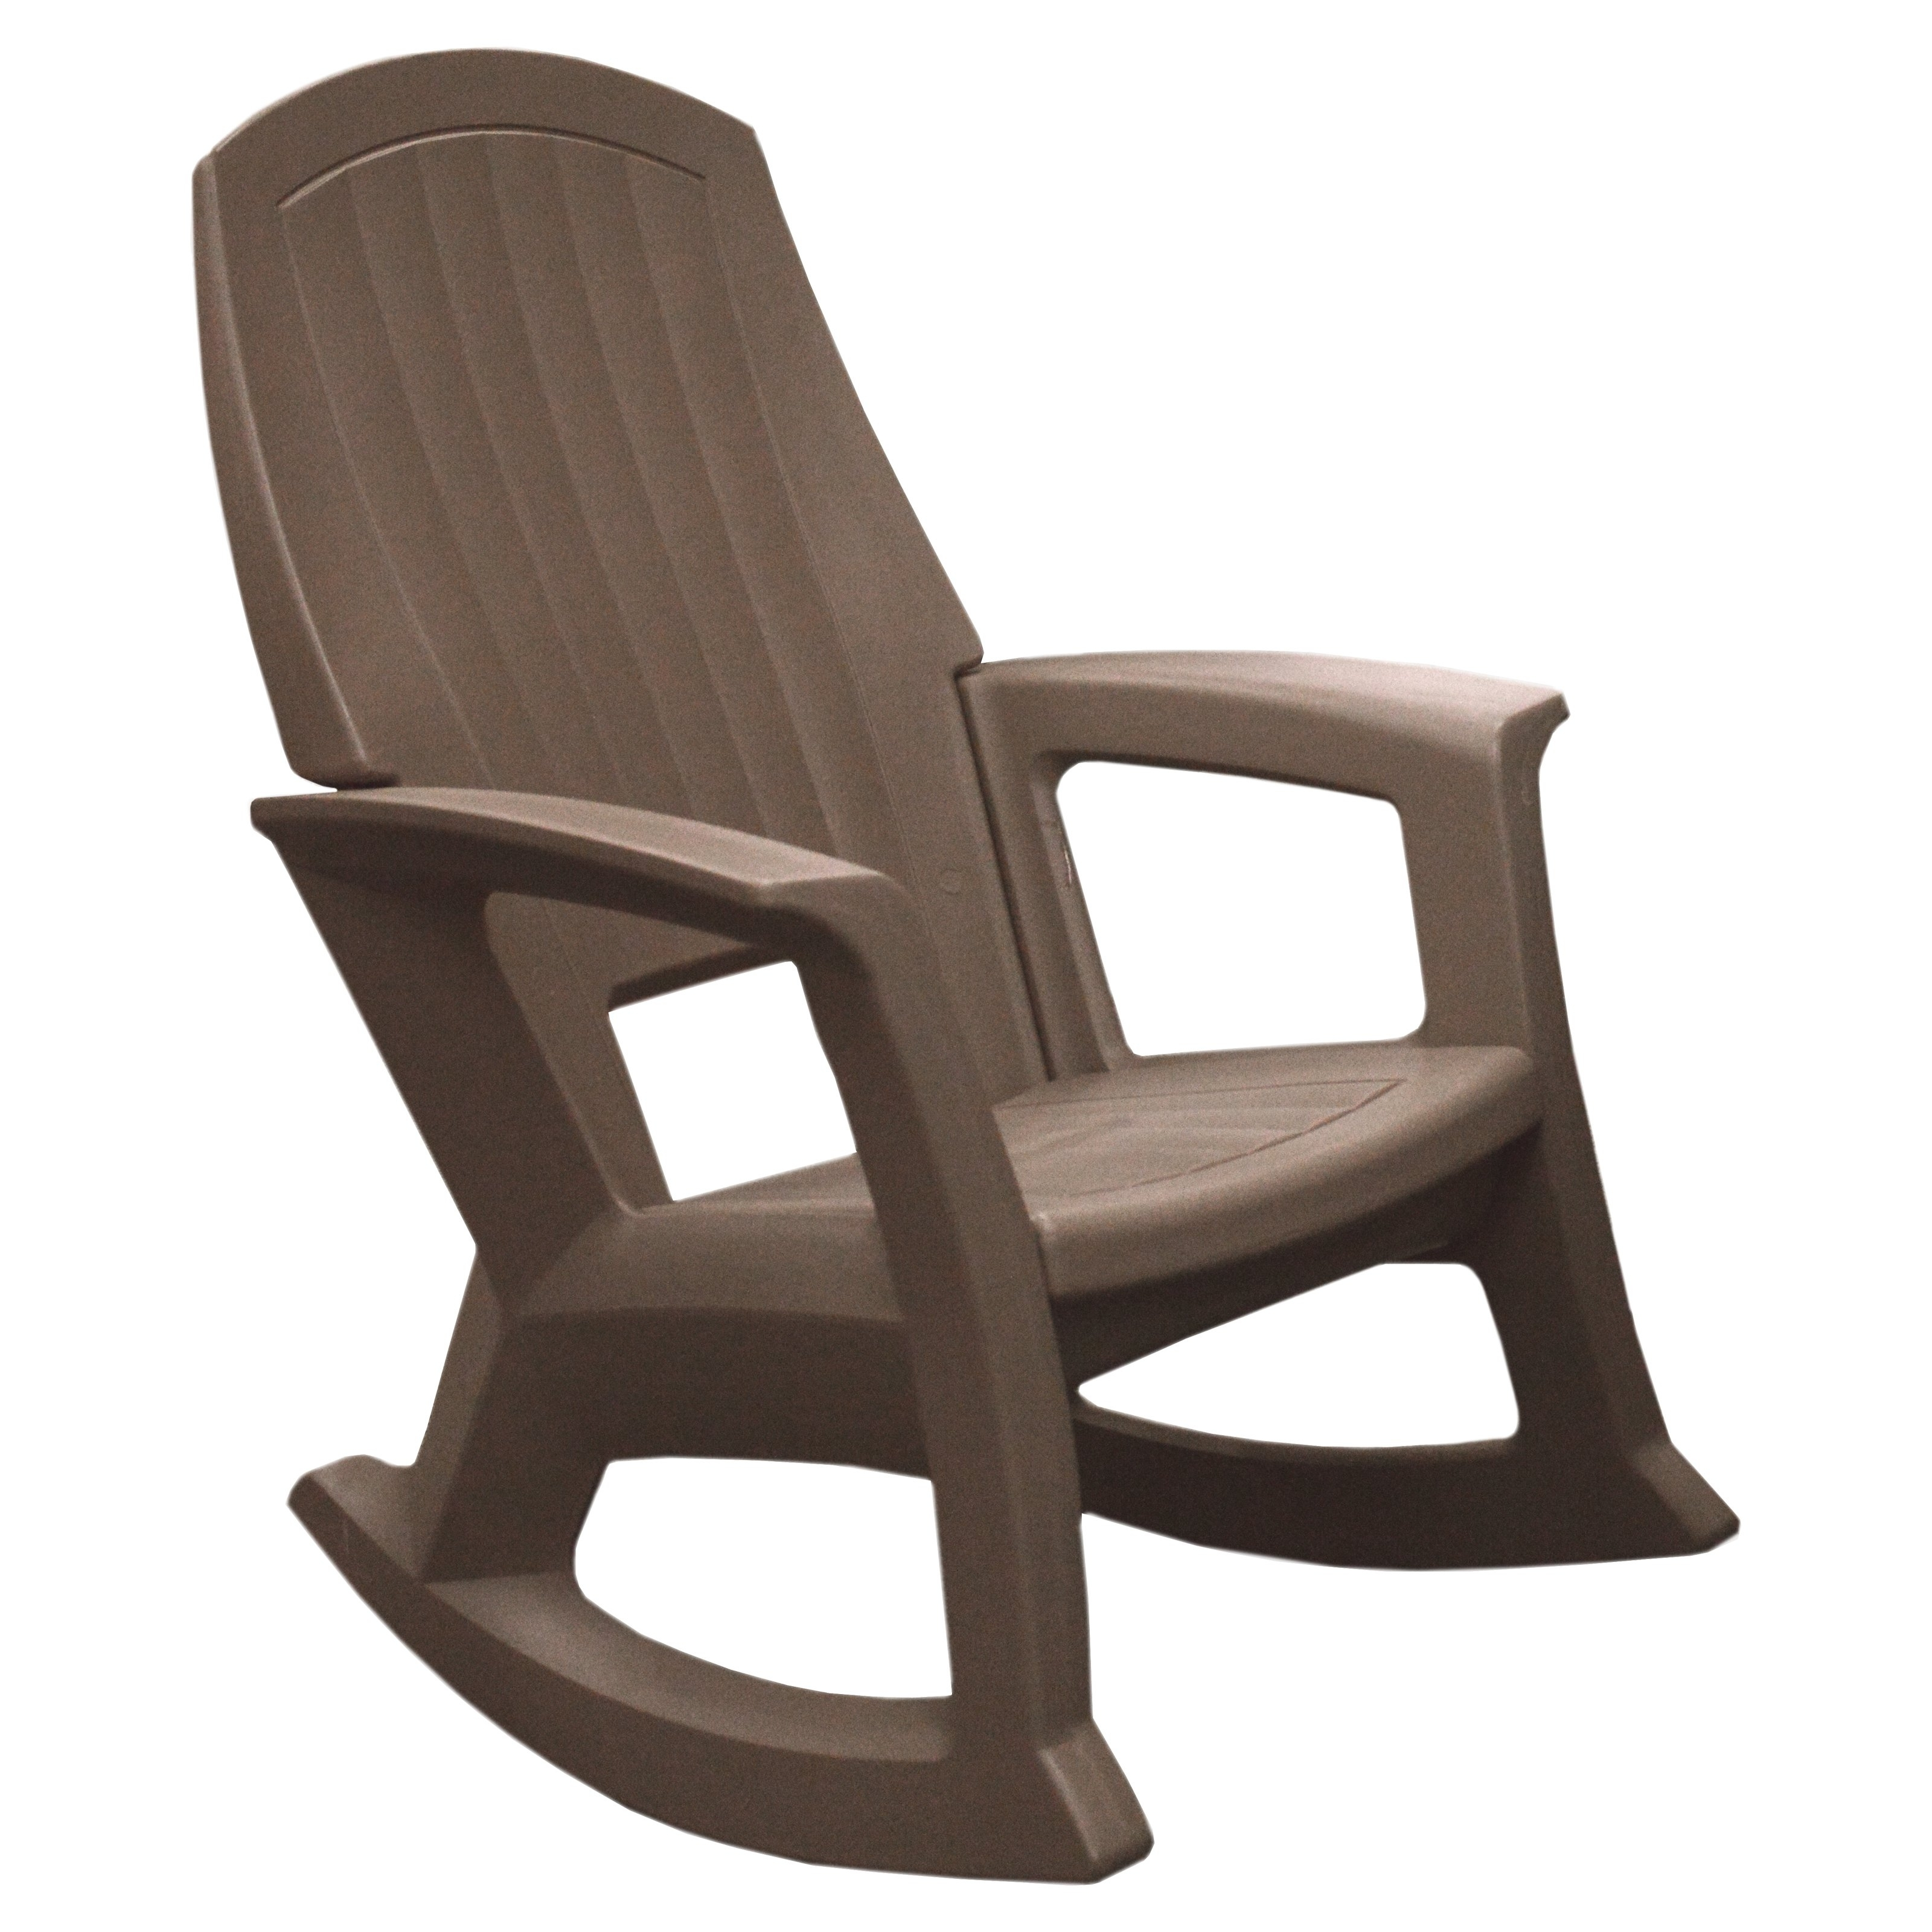 Semco Recycled Plastic Rocking Chair Hayneedle Patio Covers Plans Within 2018 Plastic Patio Rocking Chairs (View 9 of 15)